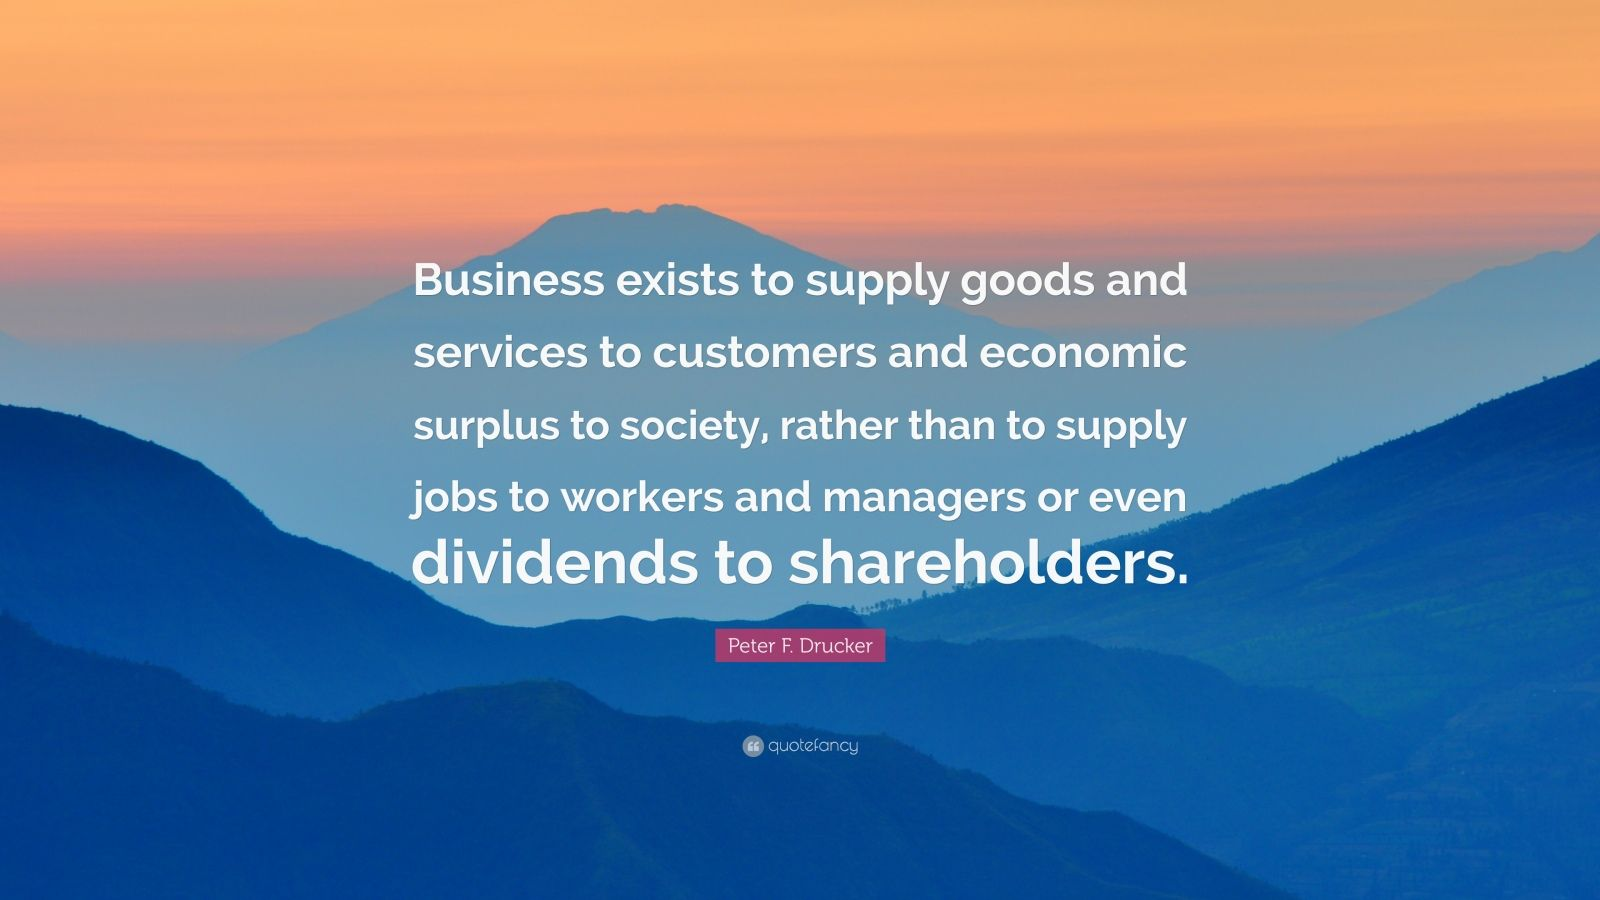 """Peter F. Drucker Quote: """"Business exists to supply goods and services to customers and economic surplus to society, rather than to supply jobs to workers and managers or even dividends to shareholders."""""""